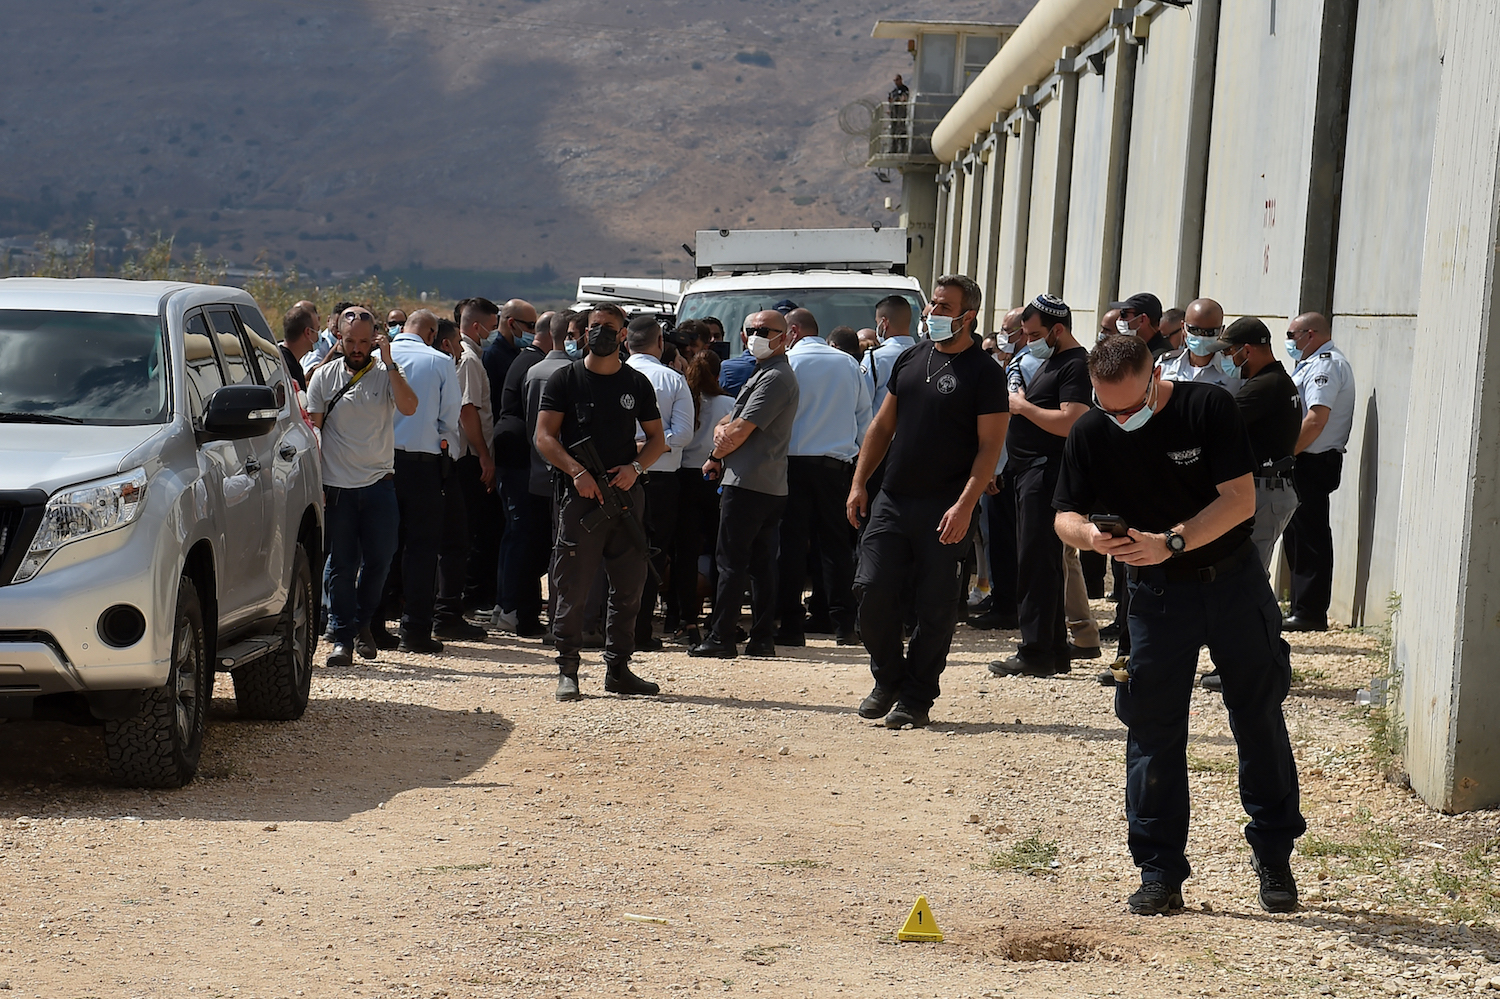 Israeli police officers and prison guards at the scene of the escape of six Palestinian prisoners, Gilboa Prison, northern Israel, September 6, 2021. (Photo by Flash90)